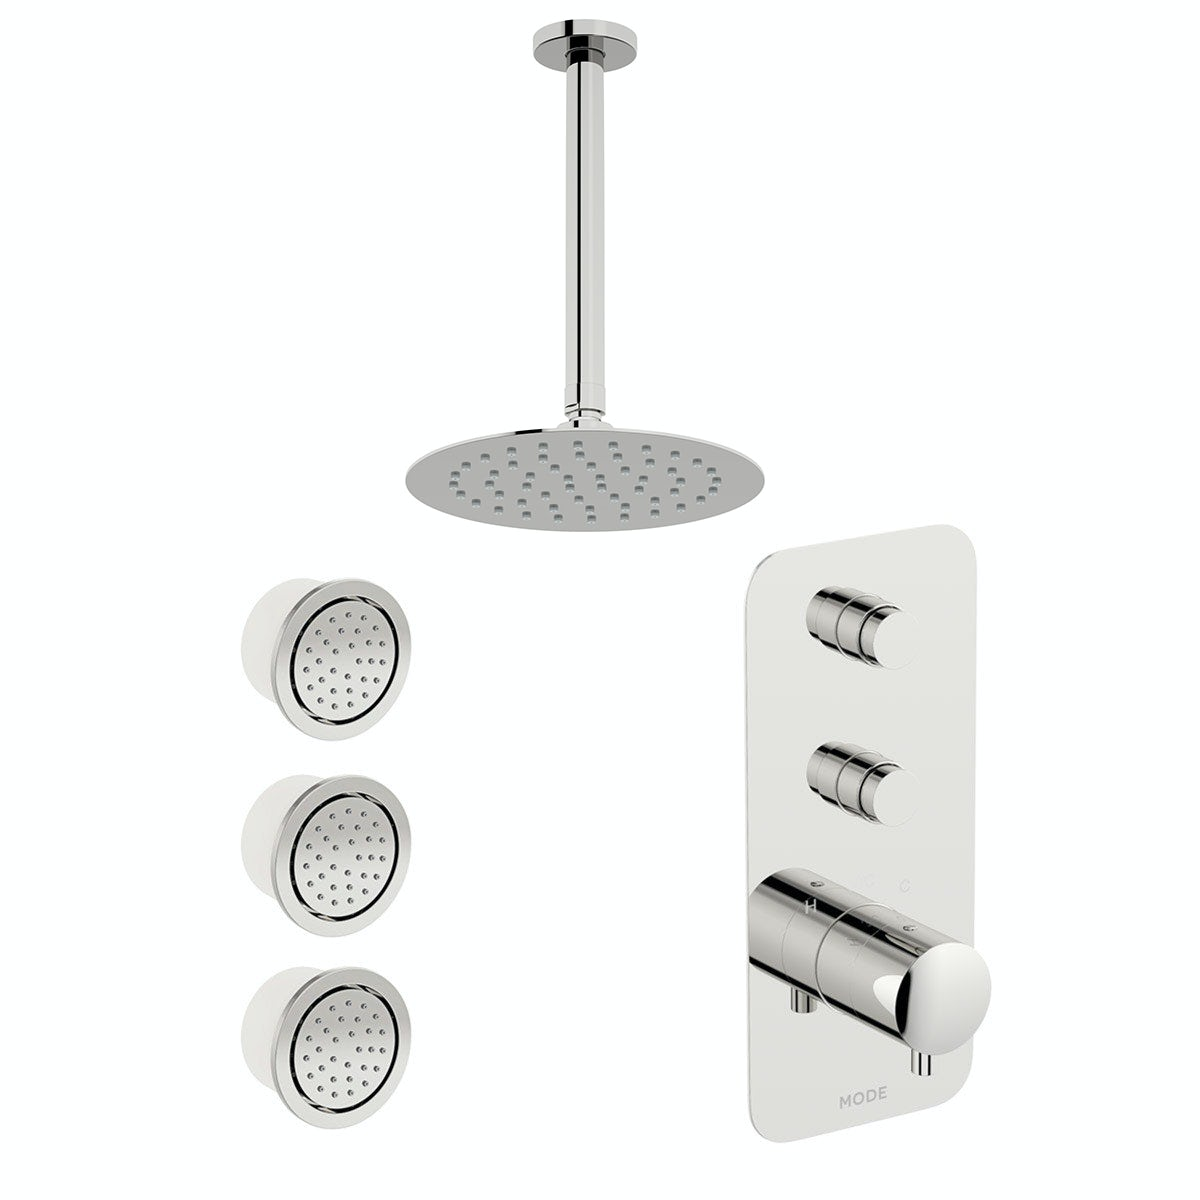 Mode Foster thermostatic push button shower set with ceiling arm and body jets